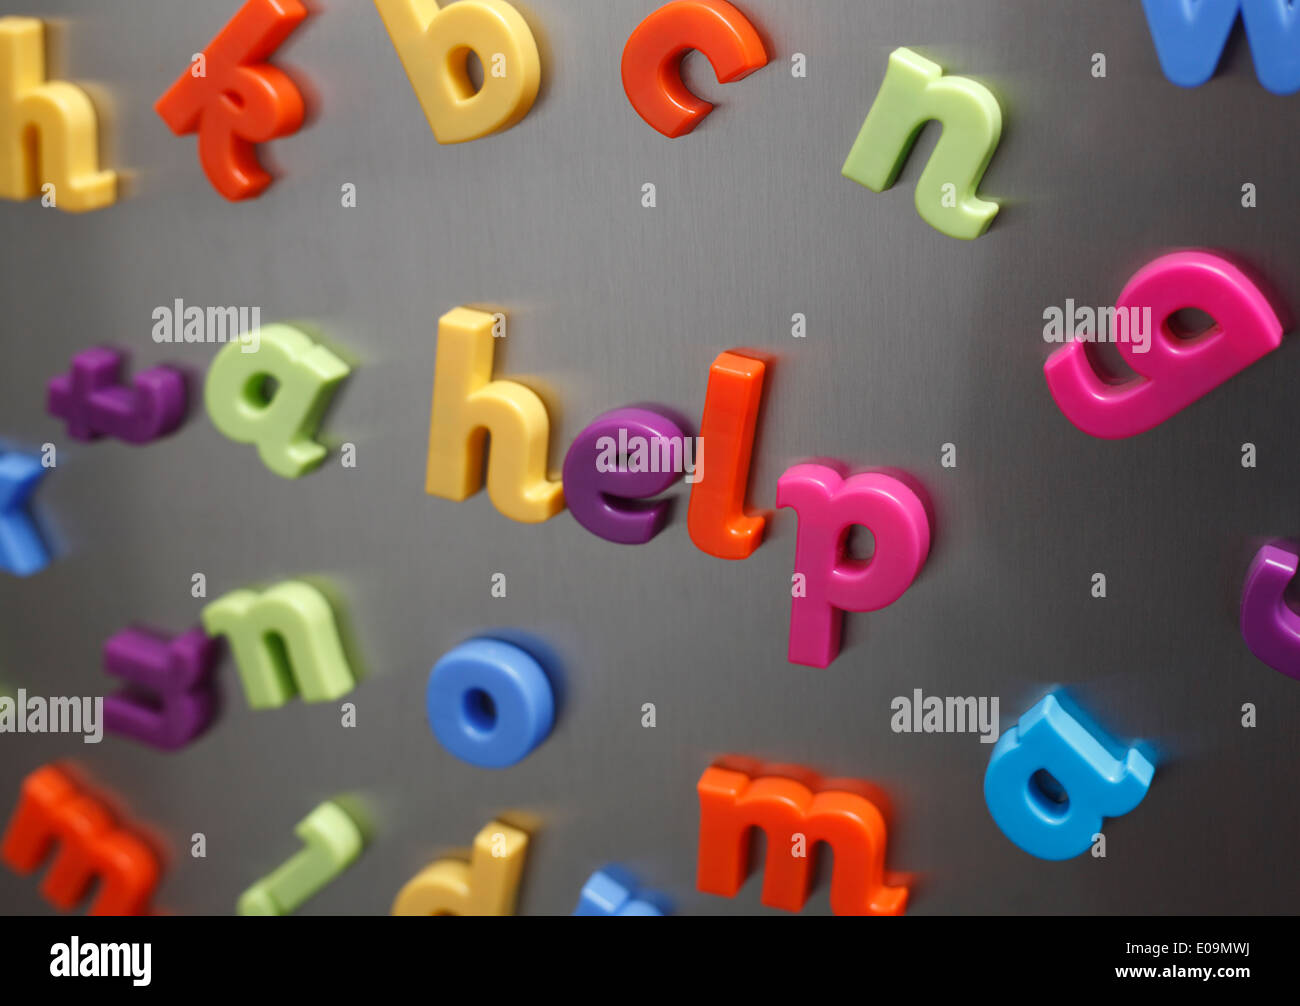 help spelled out in plastic magnetic letters on a fridge